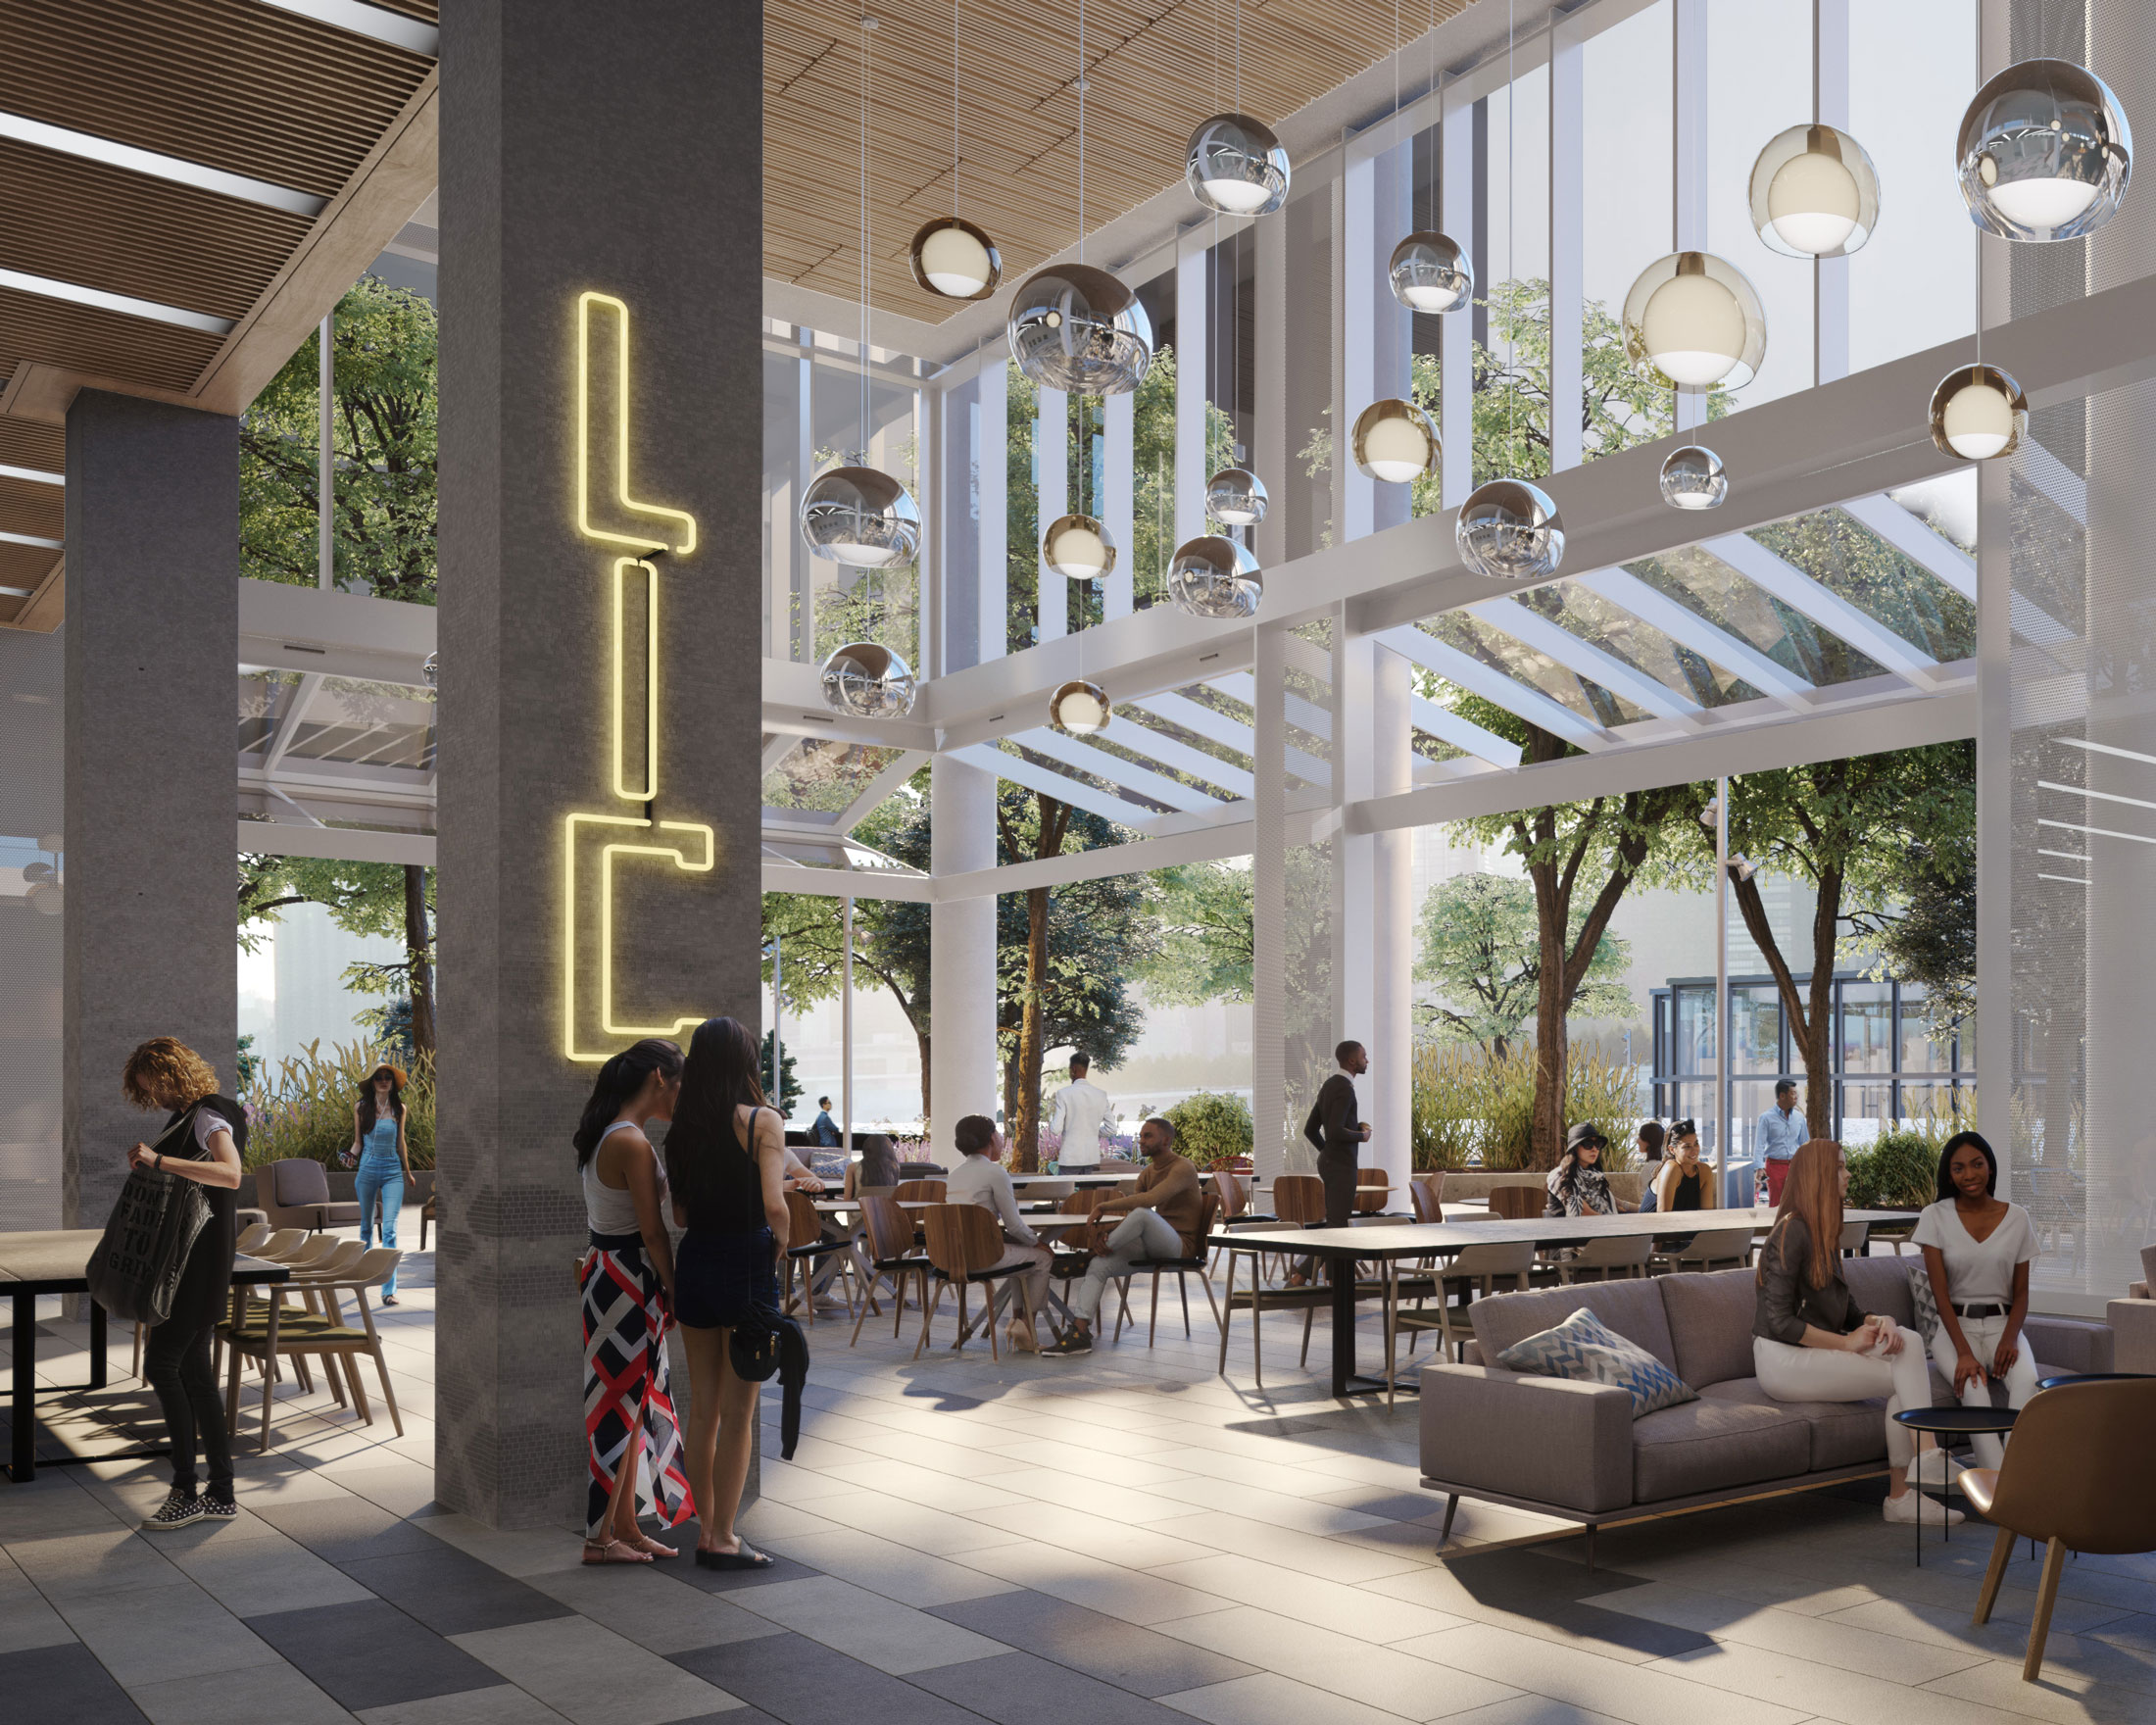 Architectural Rendering of an interior detail of the Anable Basin project located in Long Island City in Queens, New York